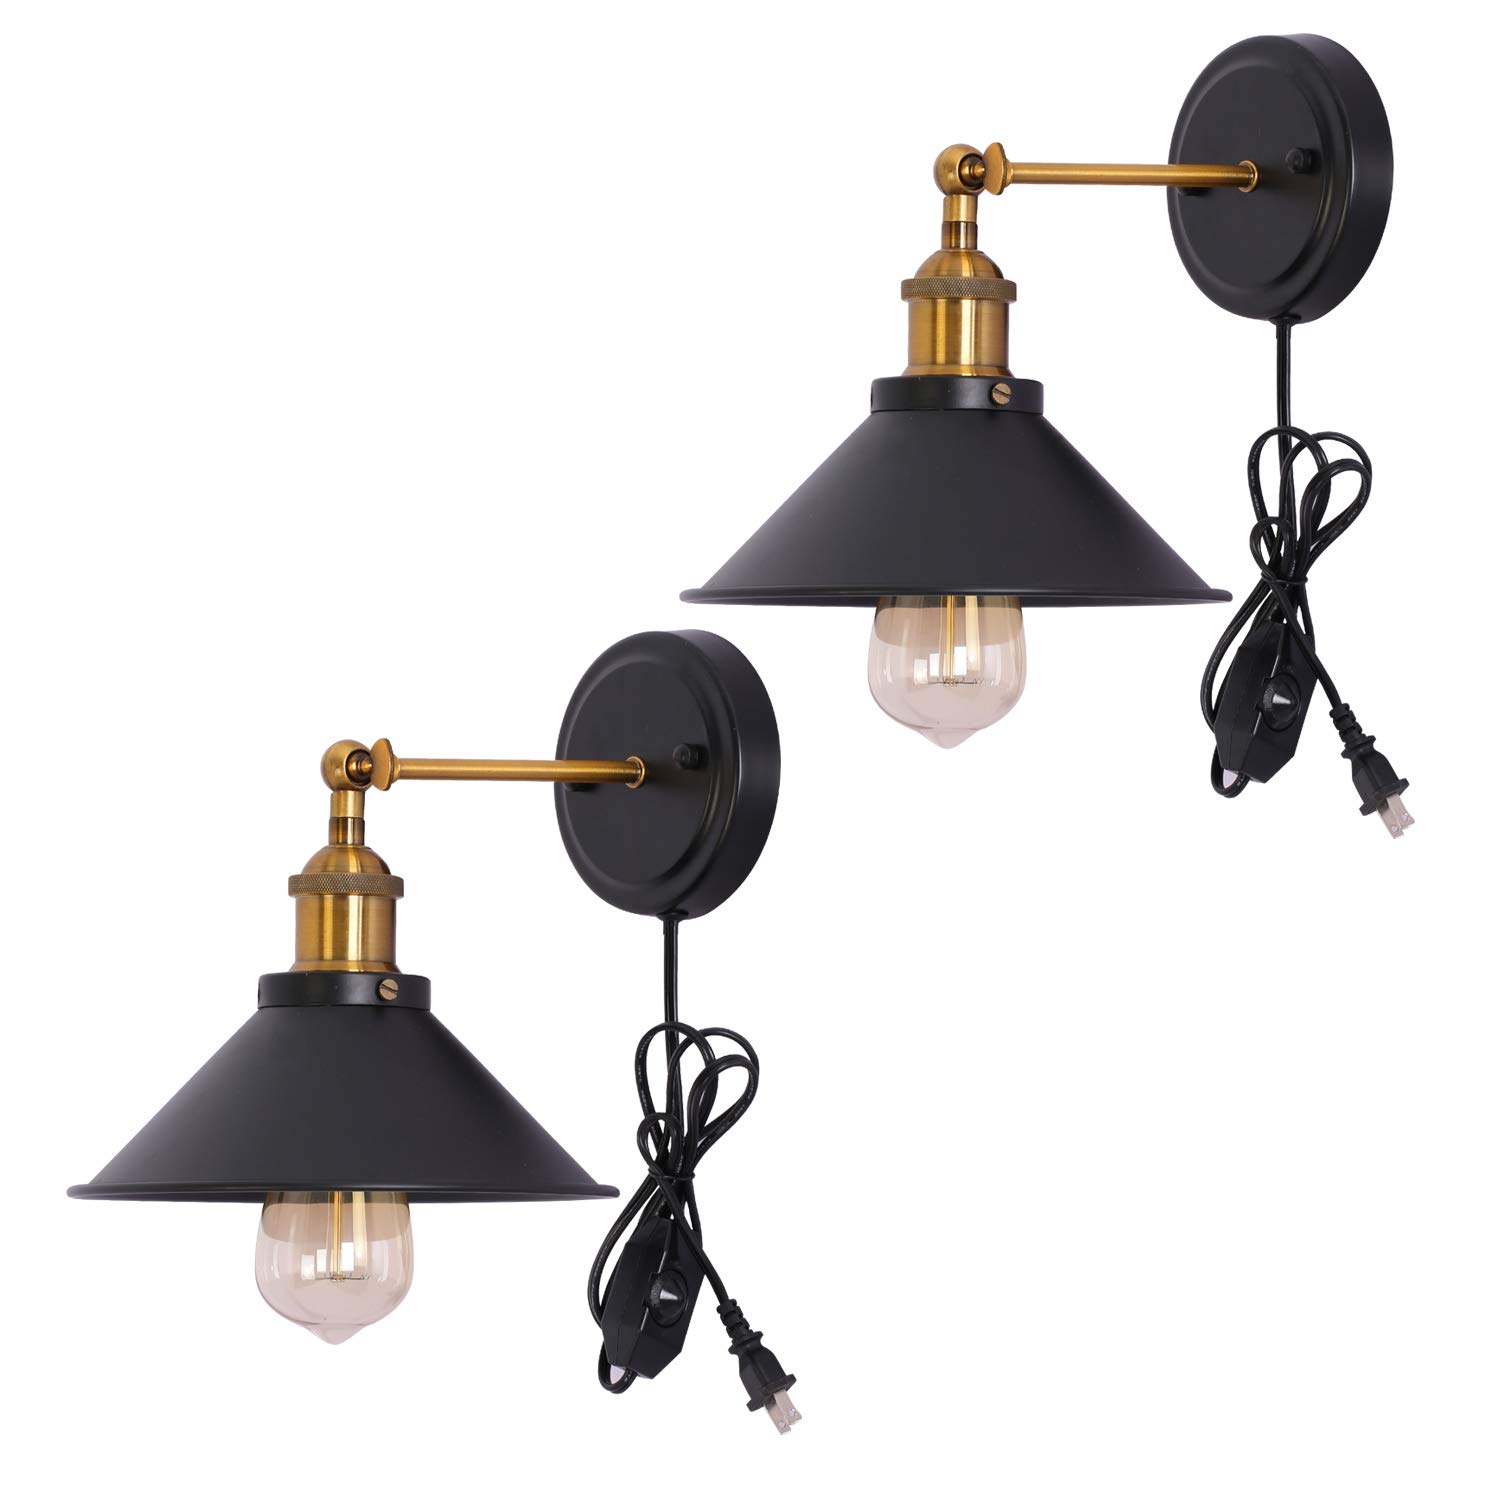 Kingmi Dimmable Metal Wall Sconce 2-Pack UL Black Hardwire Industrial Vintage Wall Lamp Fixture Simplicity Arm Swing Wall Lights